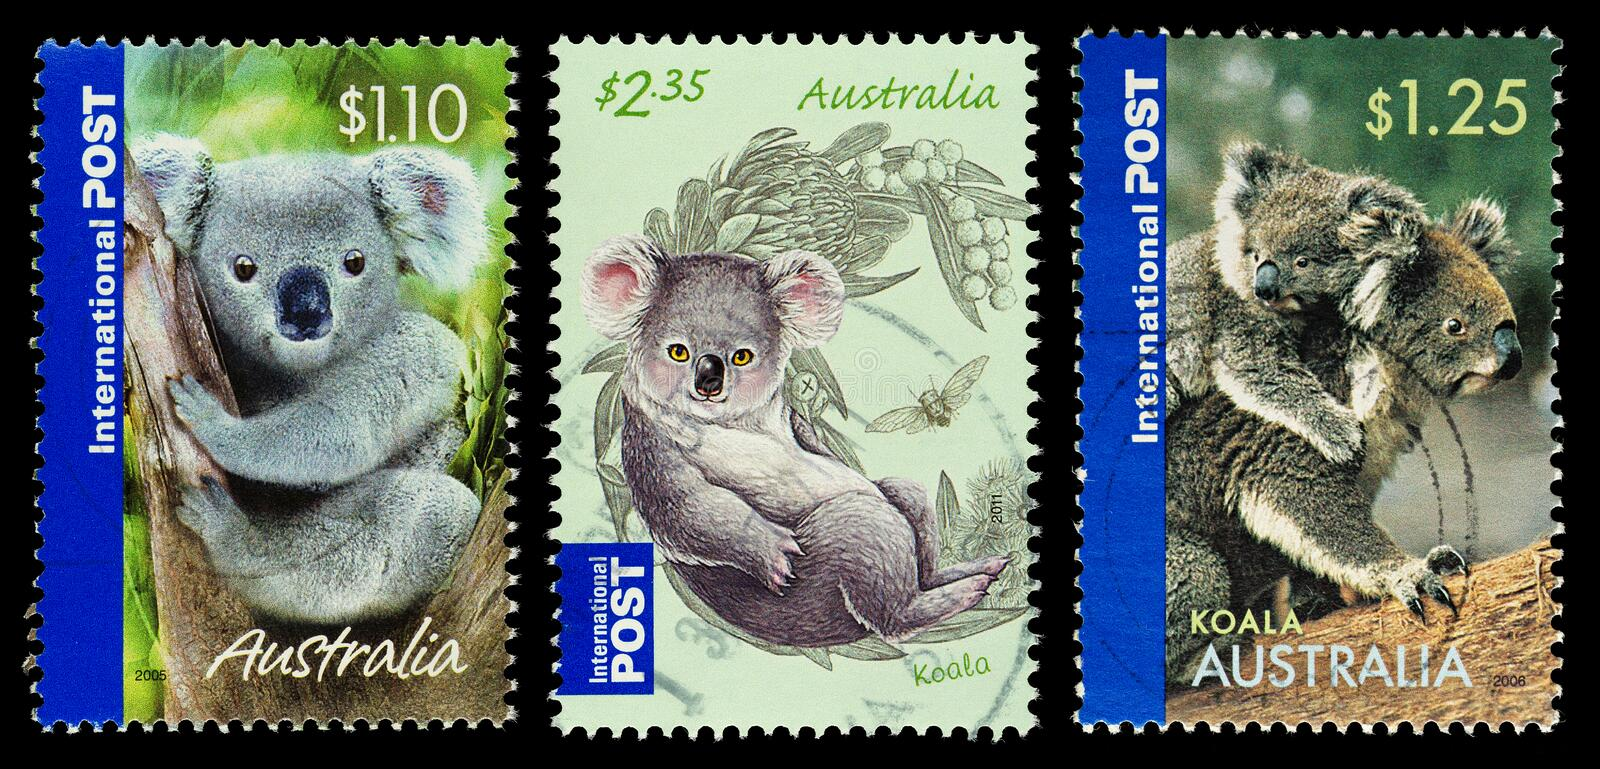 Koala Bear Postage Stamps. Three Australian Used Postage Stamps showing Koala Bears royalty free stock photo